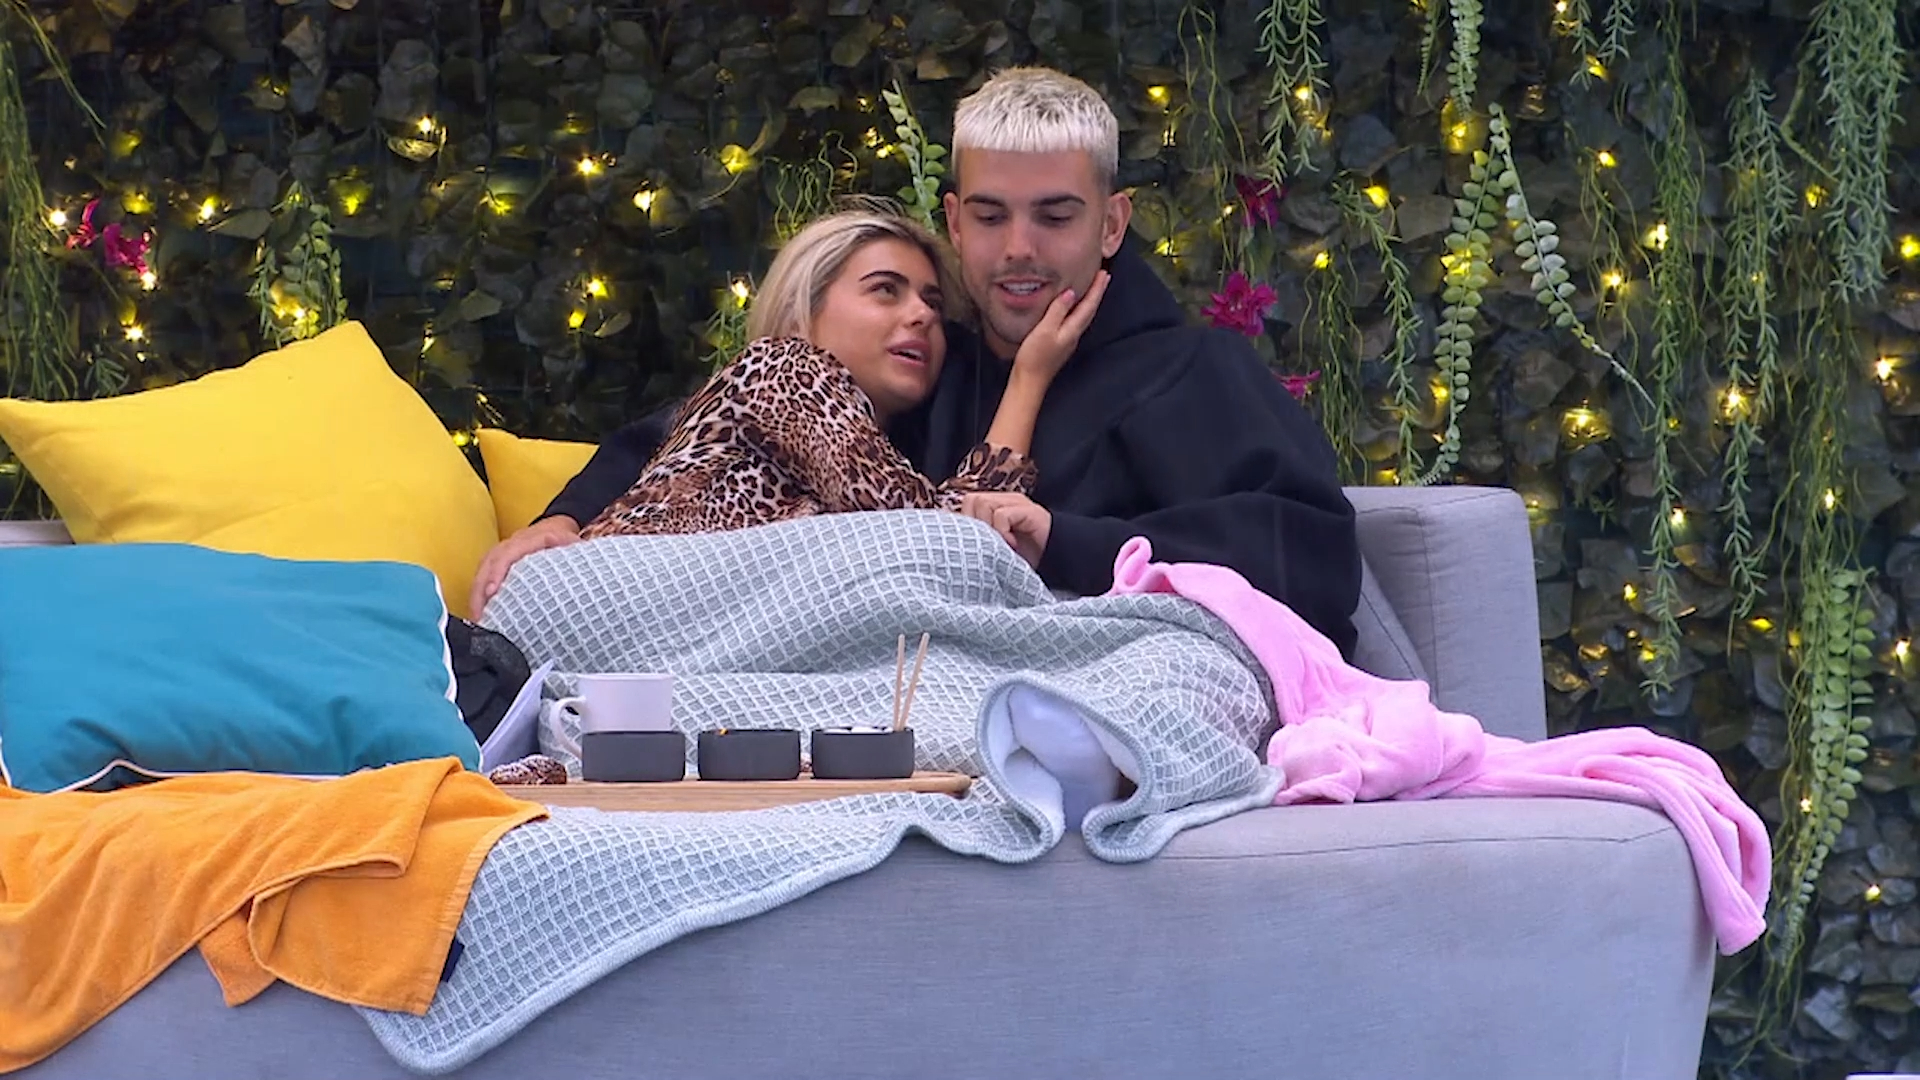 Jess is 'genuinely shocked' when Aaron plans a date for her